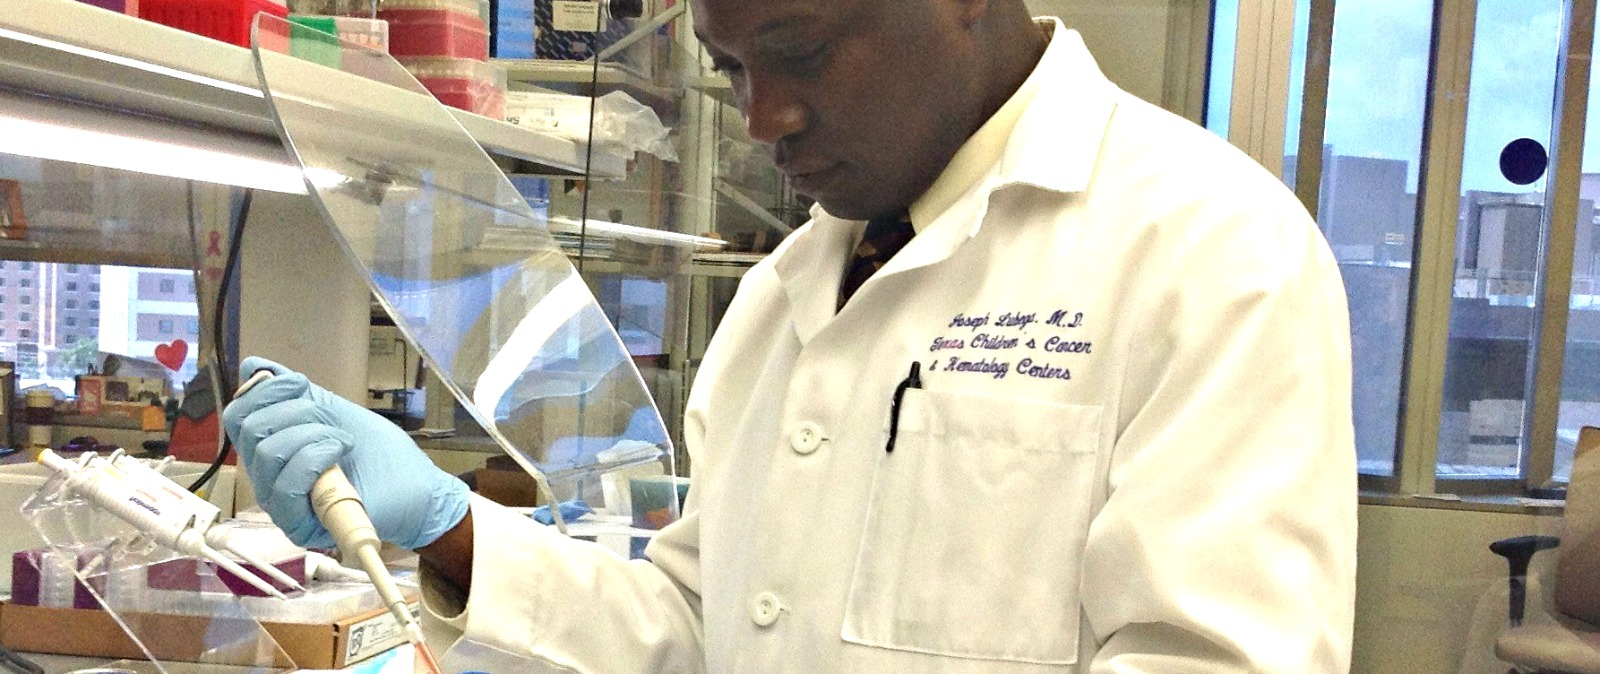 Dr-Joseph-Lubega-in-lab